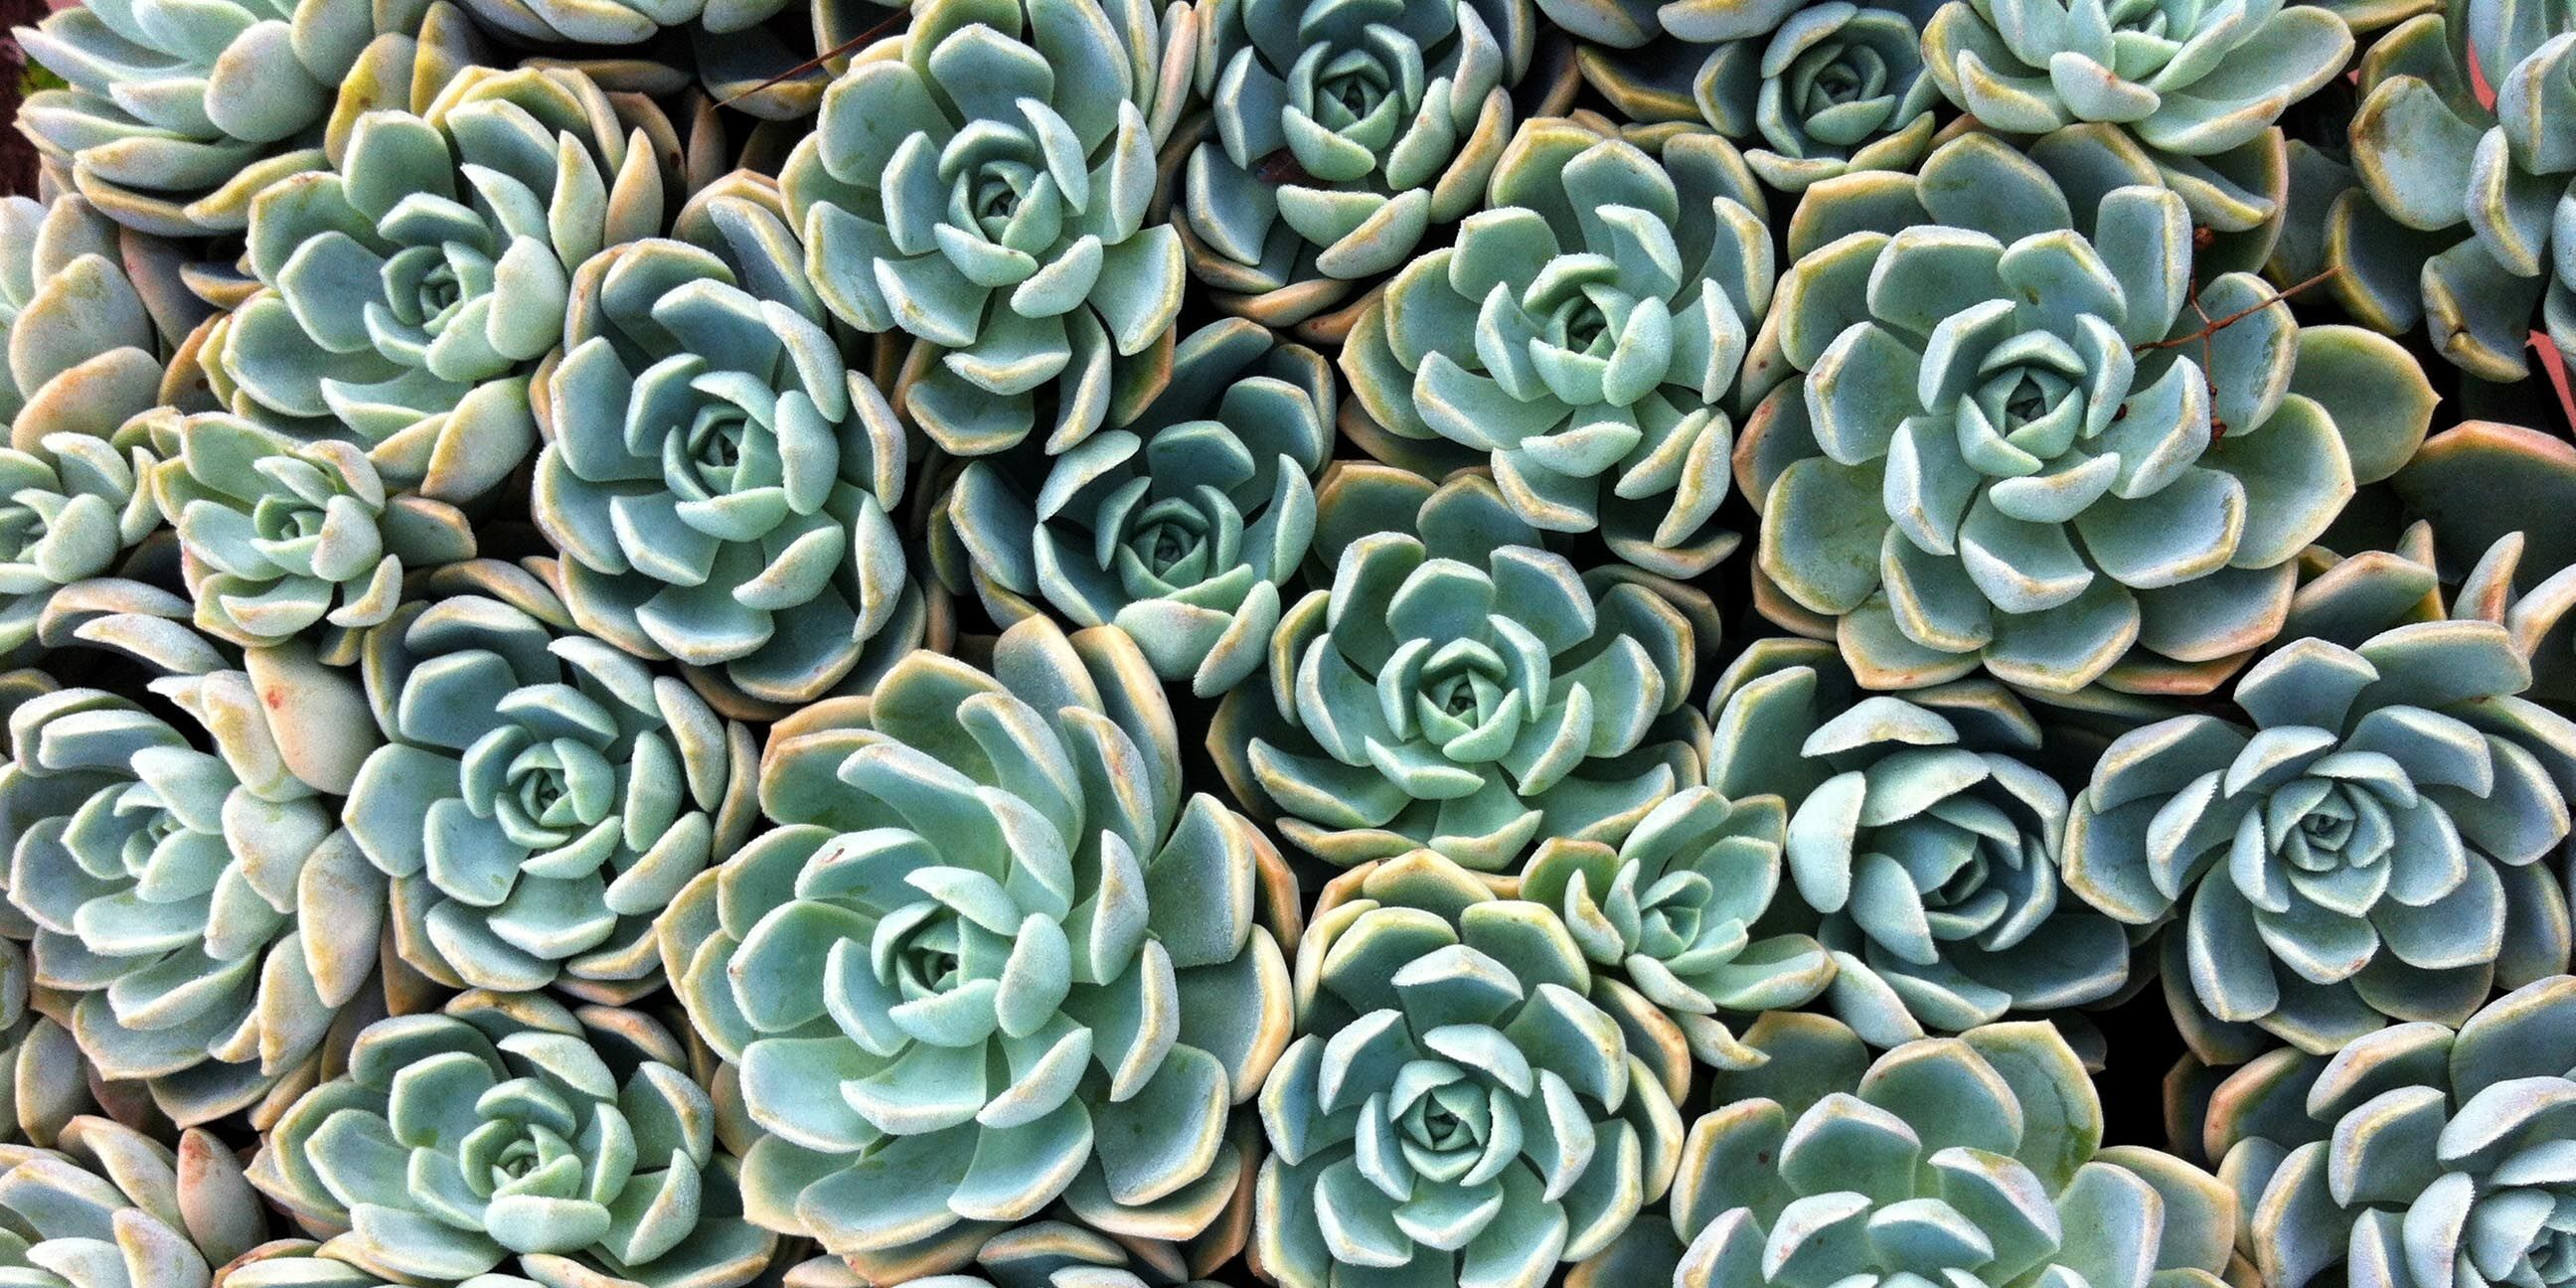 10 Things You Need to Know About Succulents